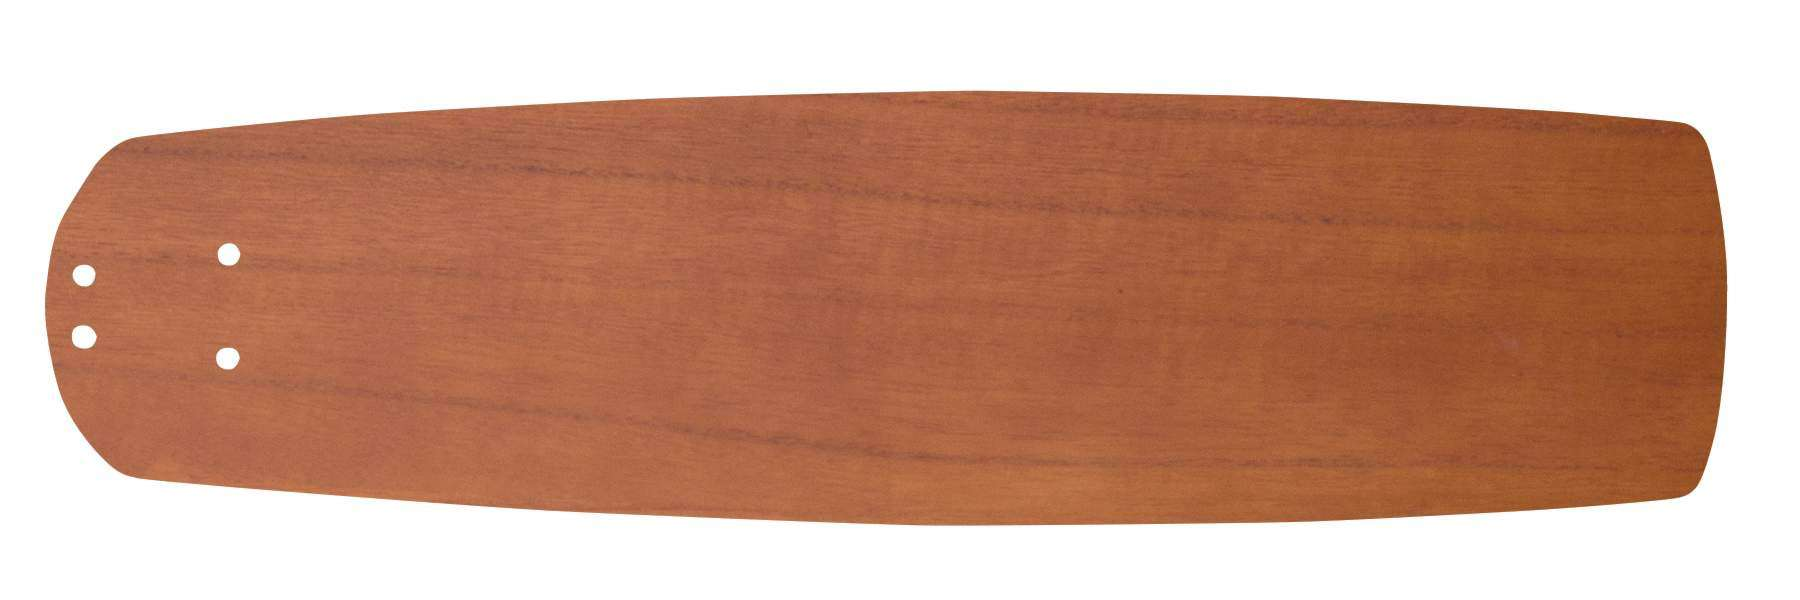 "Blade Select Series 22"" Teak Finish Solid Wood Blades"